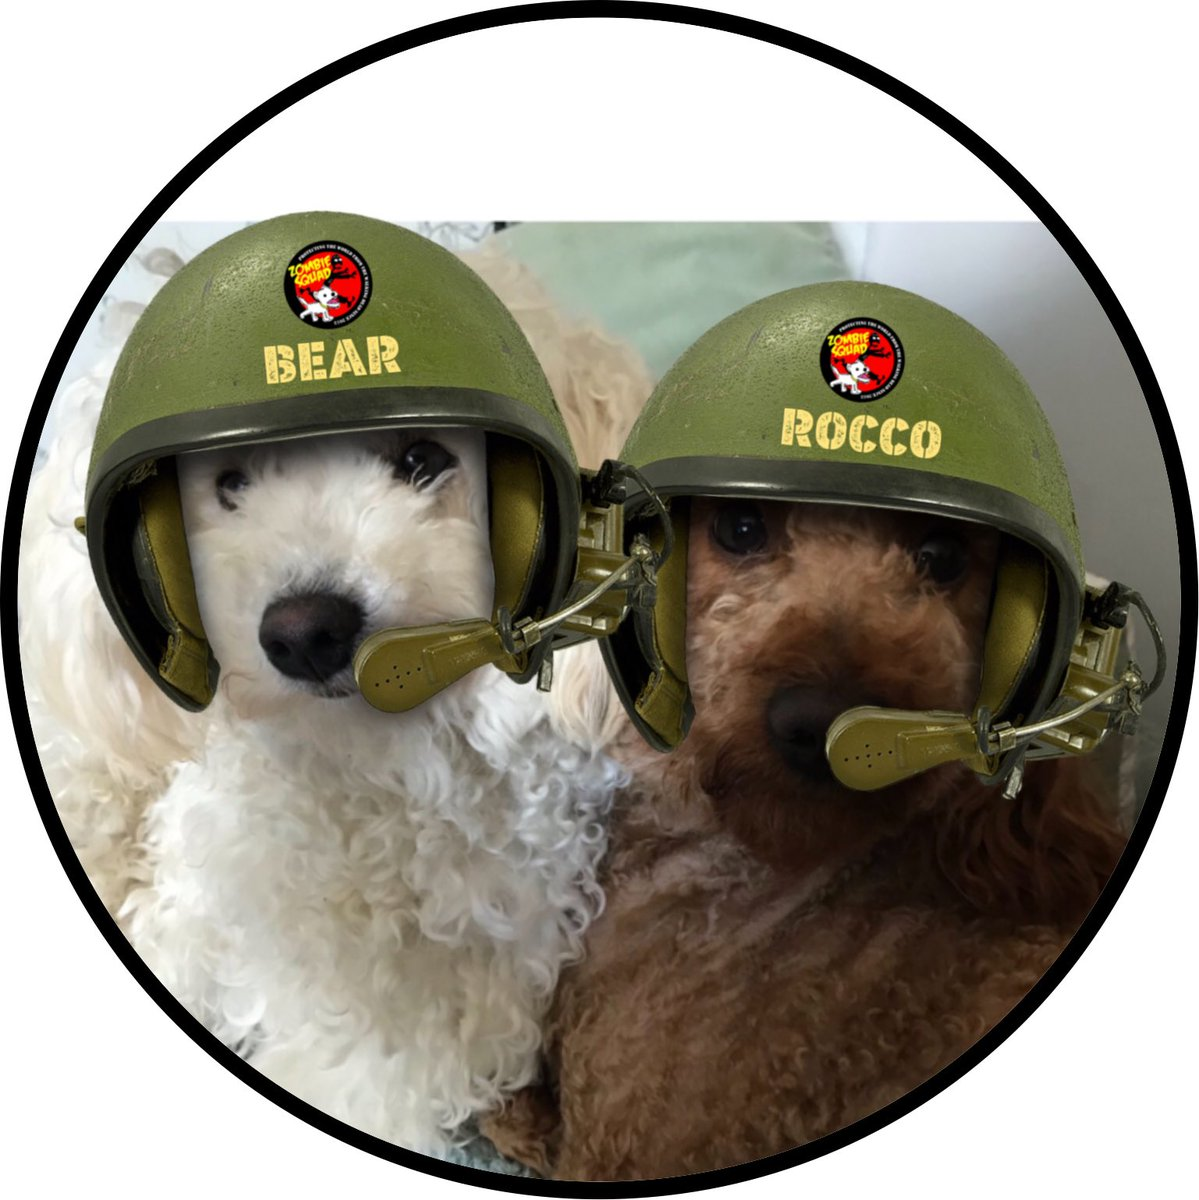 Welcome to #ZSHQ Rocco and Bear @RBear82 we have prepared your patrol kits, bark when you need support from @ZombieSquadHQ *salutes* https://t.co/xPjUSFNbEx